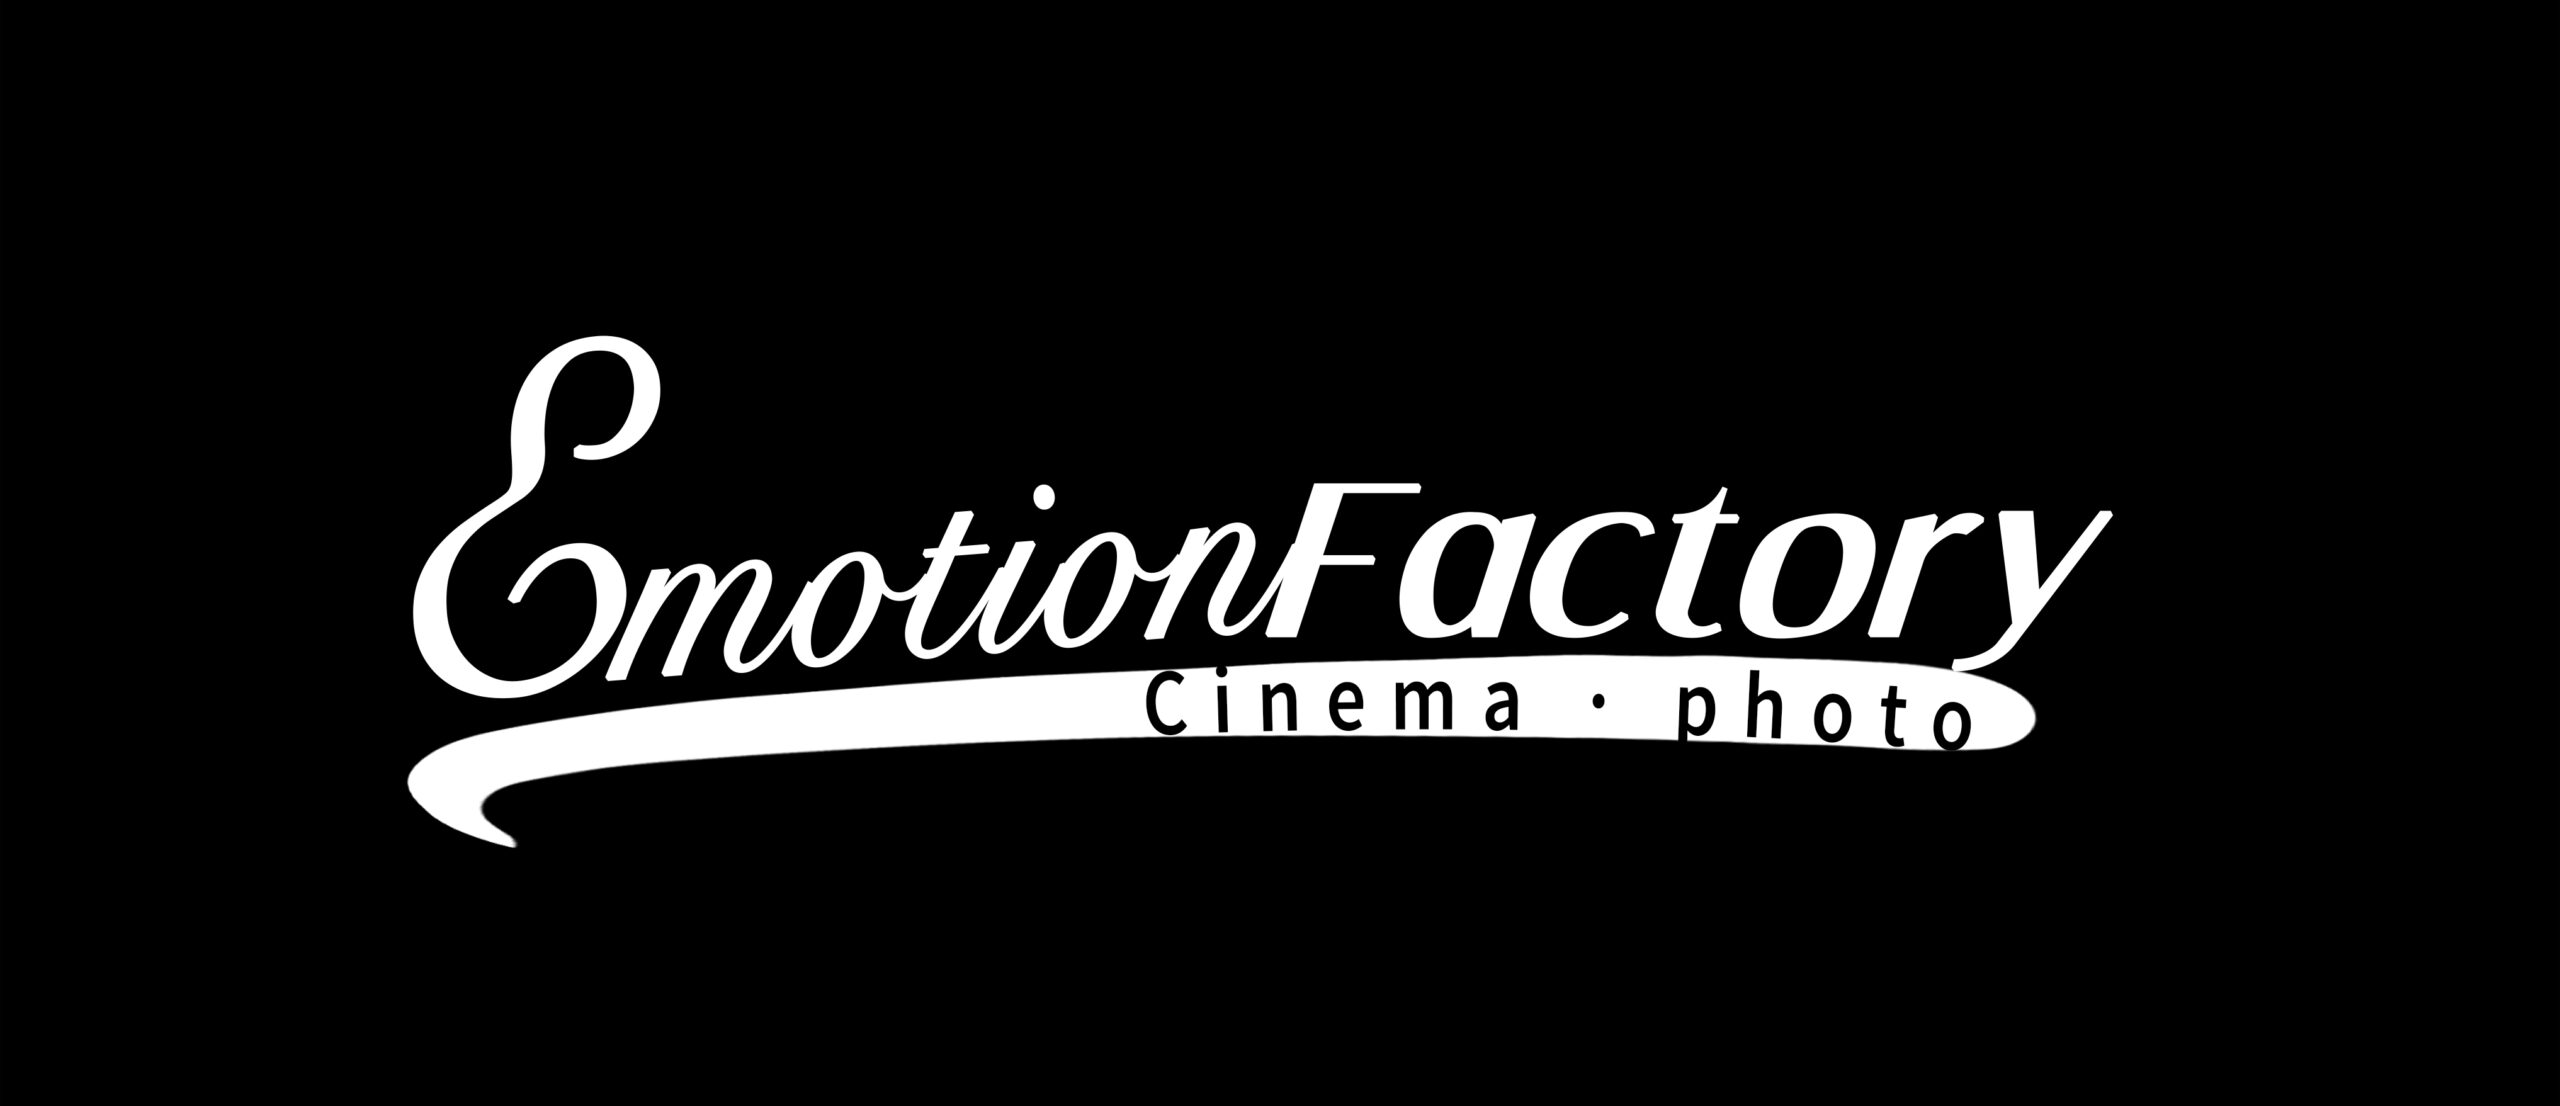 Emotion Factory